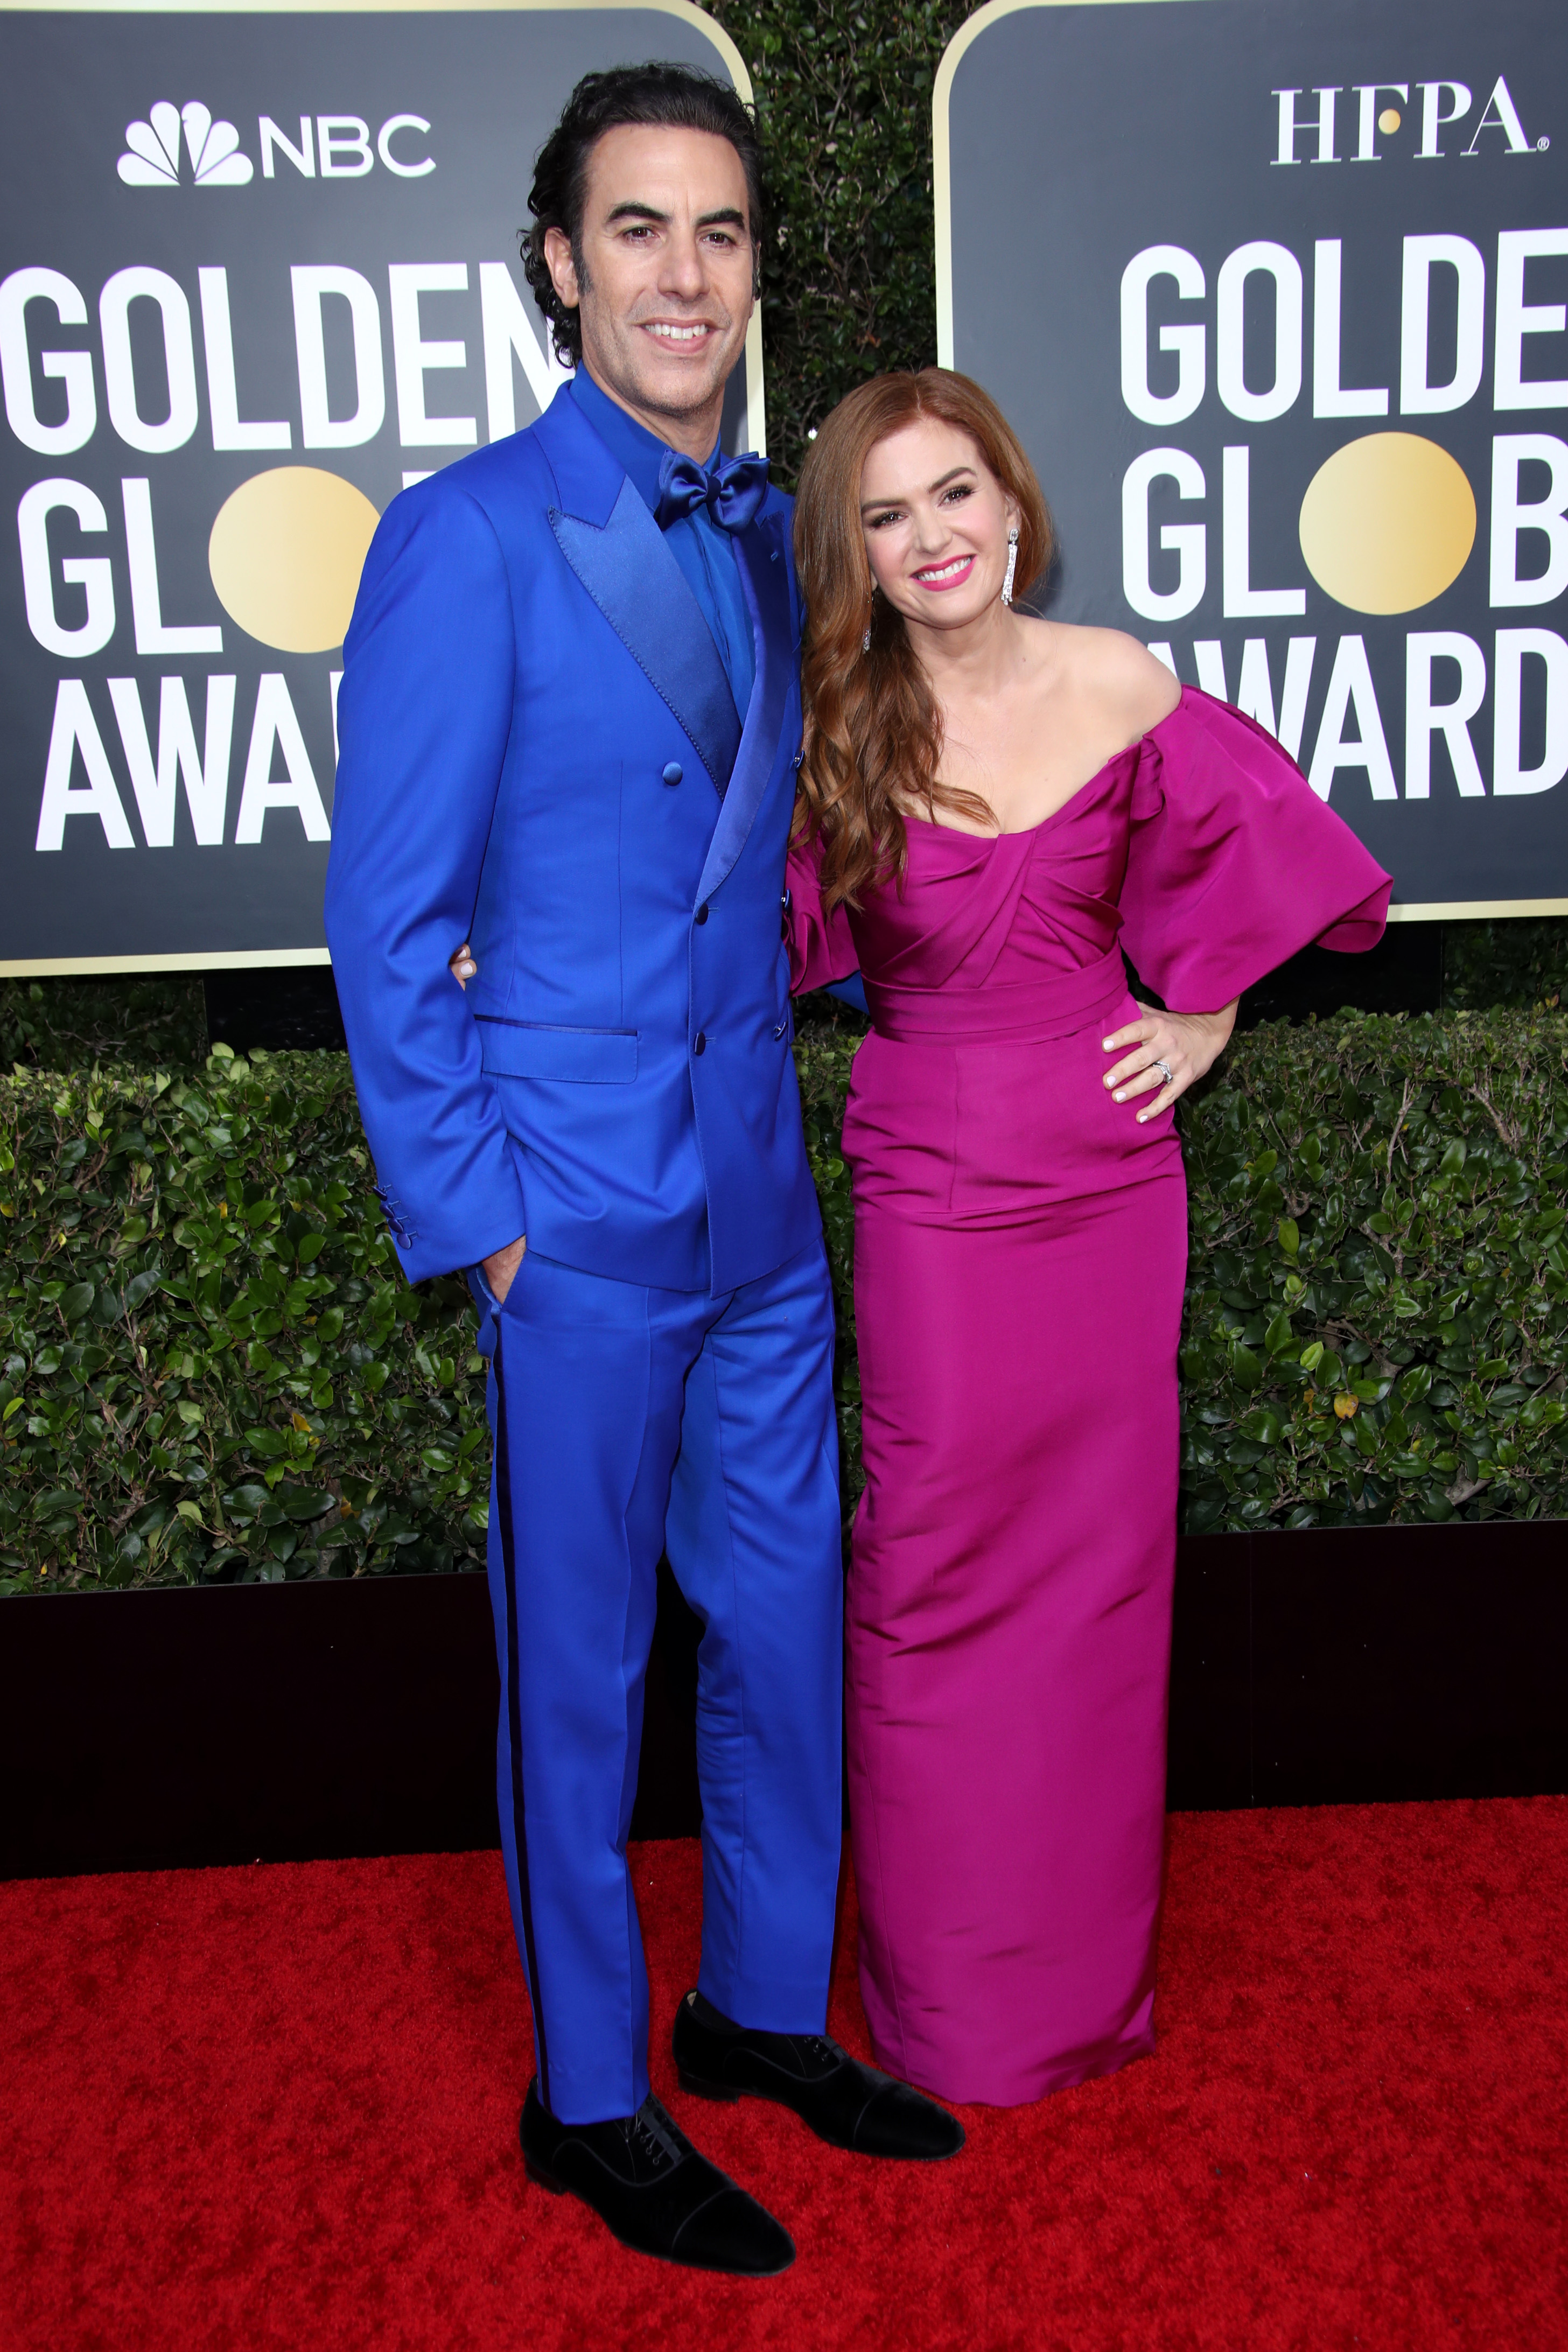 Sacha Baron Cohen and Isla Fisher77th Annual Golden Globe Awards, Arrivals, Los Angeles, USA - 05 Jan 2020